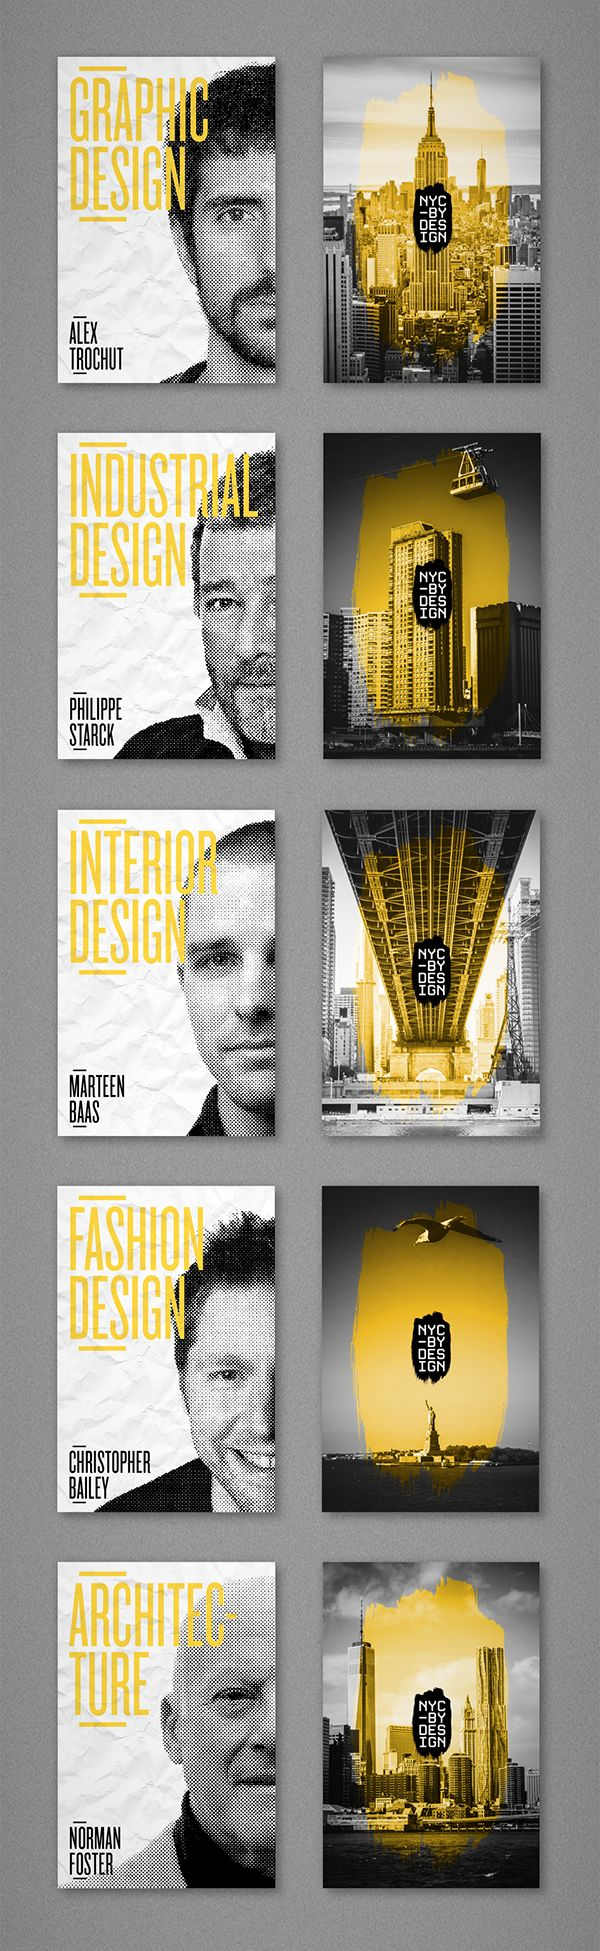 NYCxDesign - New York Design Week on Behance